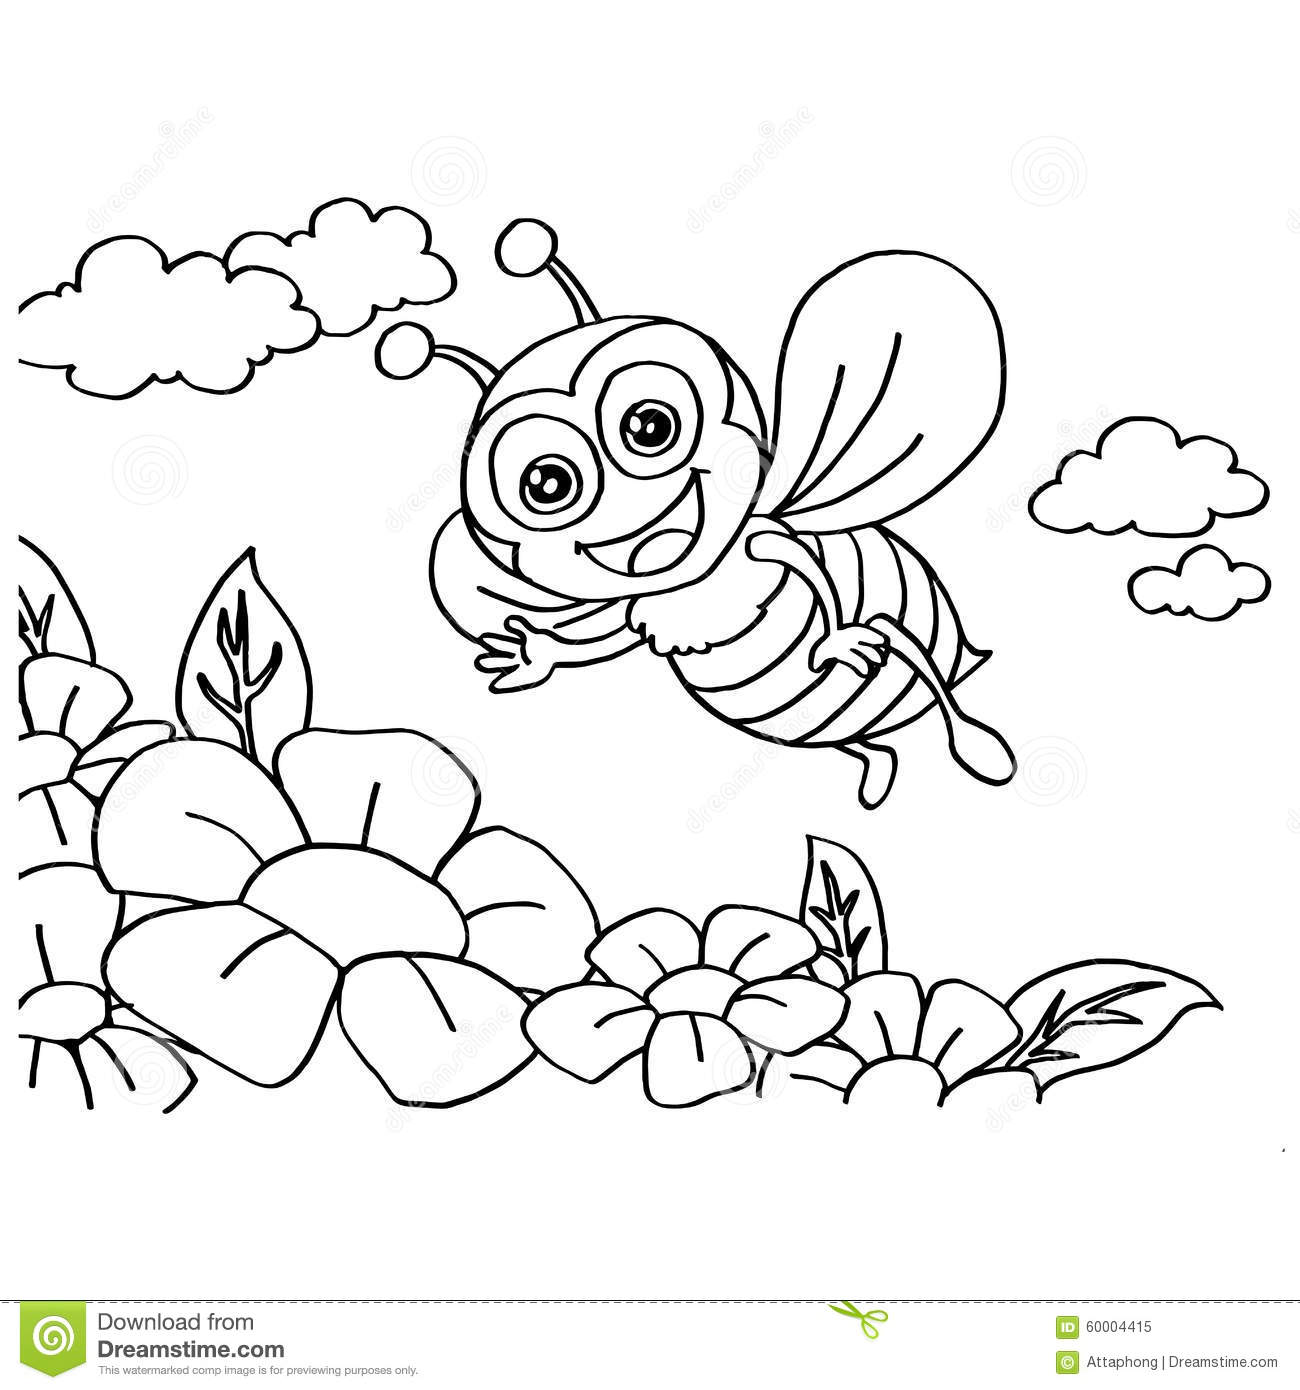 coloring pages bee - bee coloring pages vector stock vector illustration of